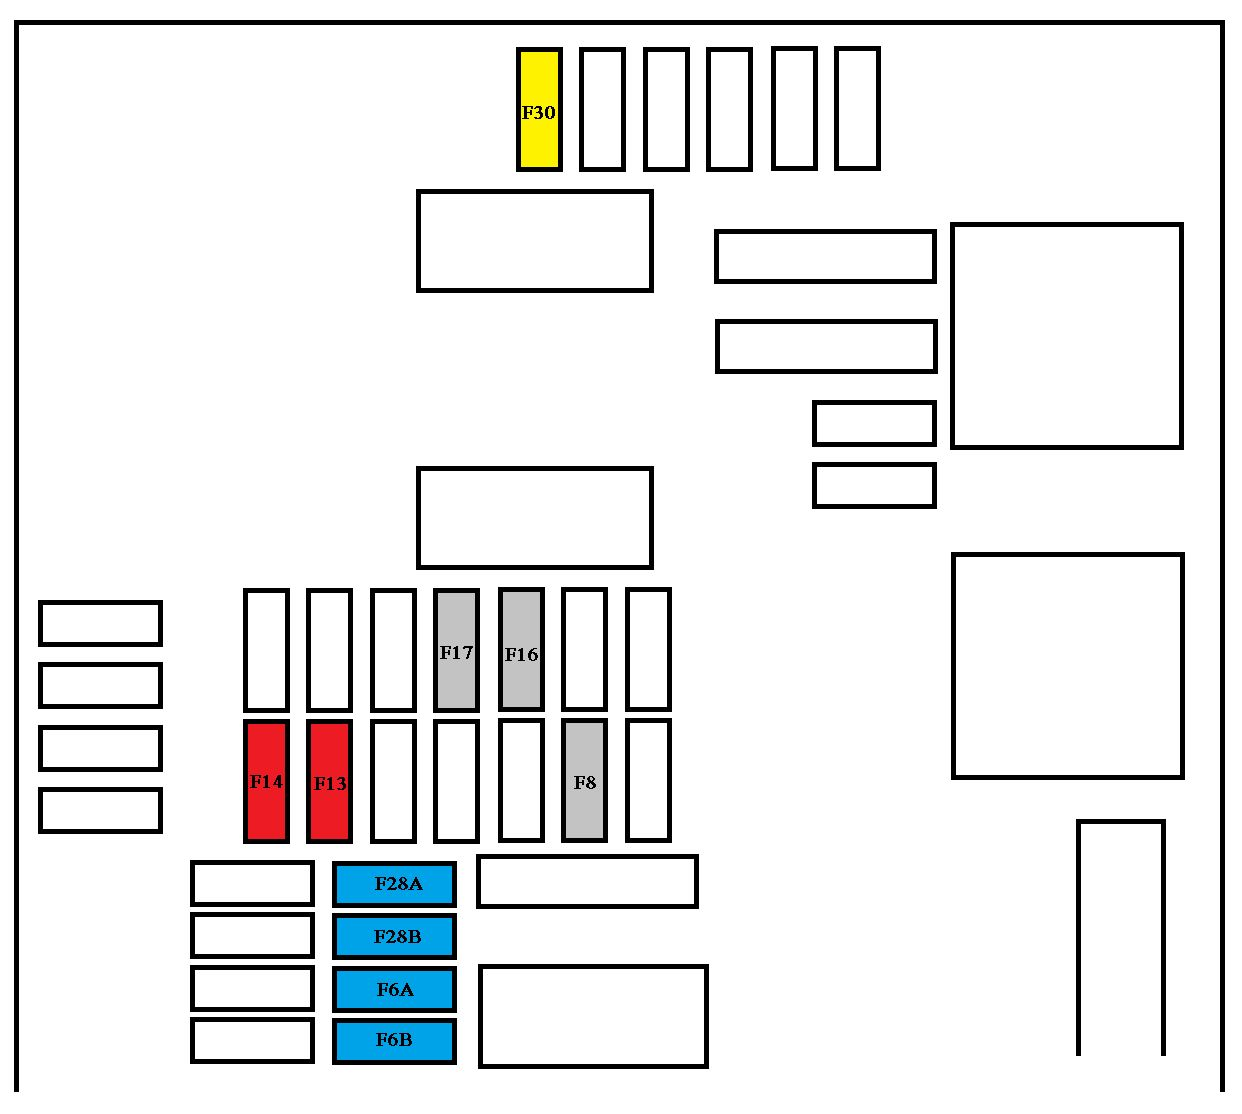 peugeot 407 fuse box wiring diagram todayspeugeot 407 fuse box diagram wiring schematic peugeot 5008 peugeot [ 1242 x 1114 Pixel ]